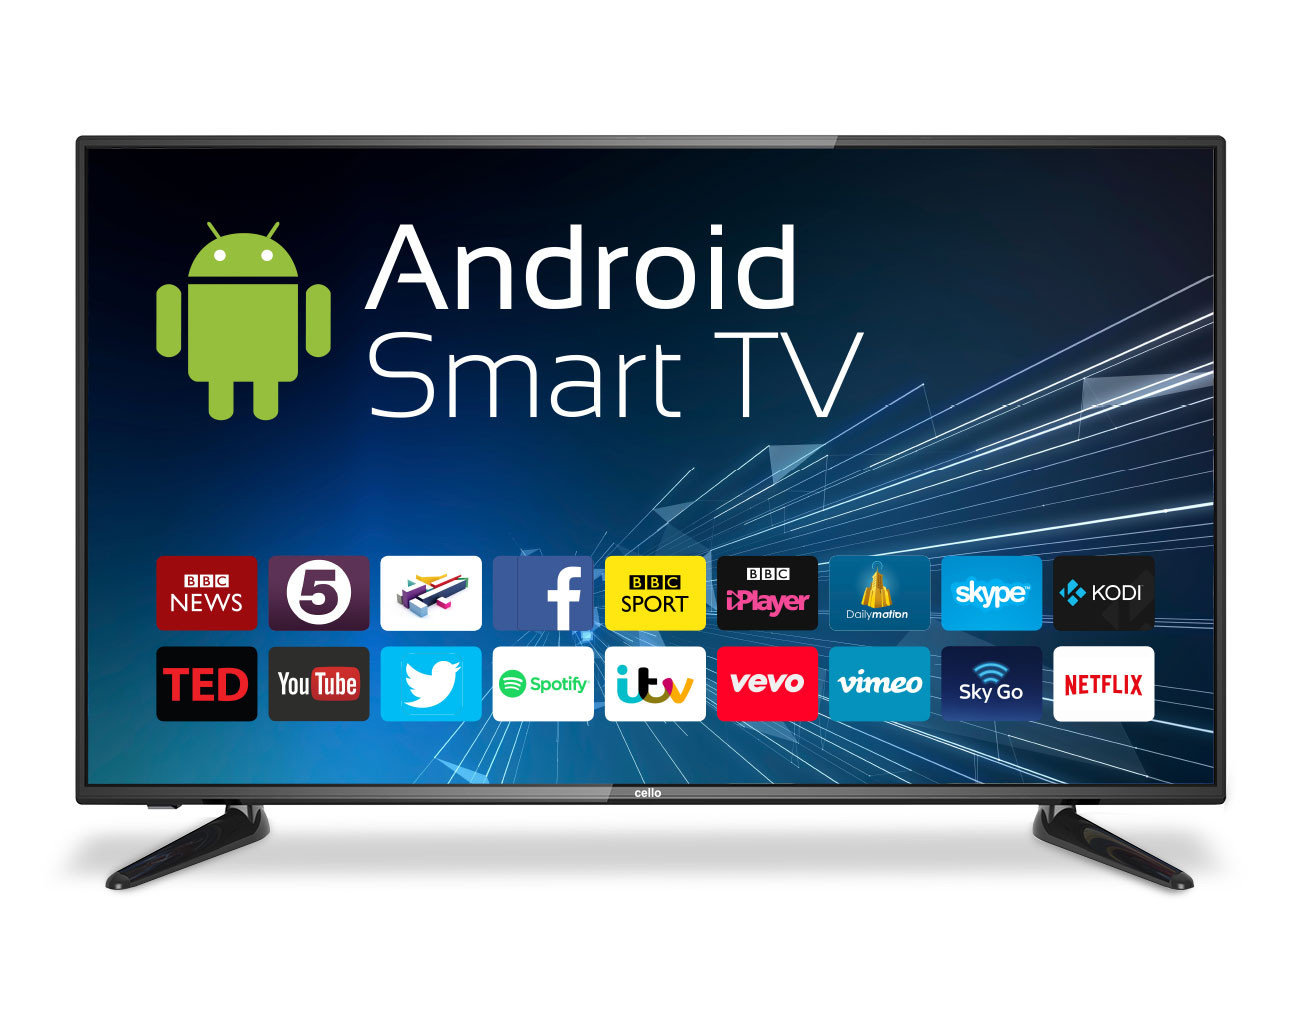 "Tv 43 Smart Tv Magnífico 43"" android Smart Led Tv with Wi Fi and Freeview T2 Hd Of Tv 43 Smart Tv Perfecto Lg 43"" Full Hd Smart Led Tv 2016 Specifications"